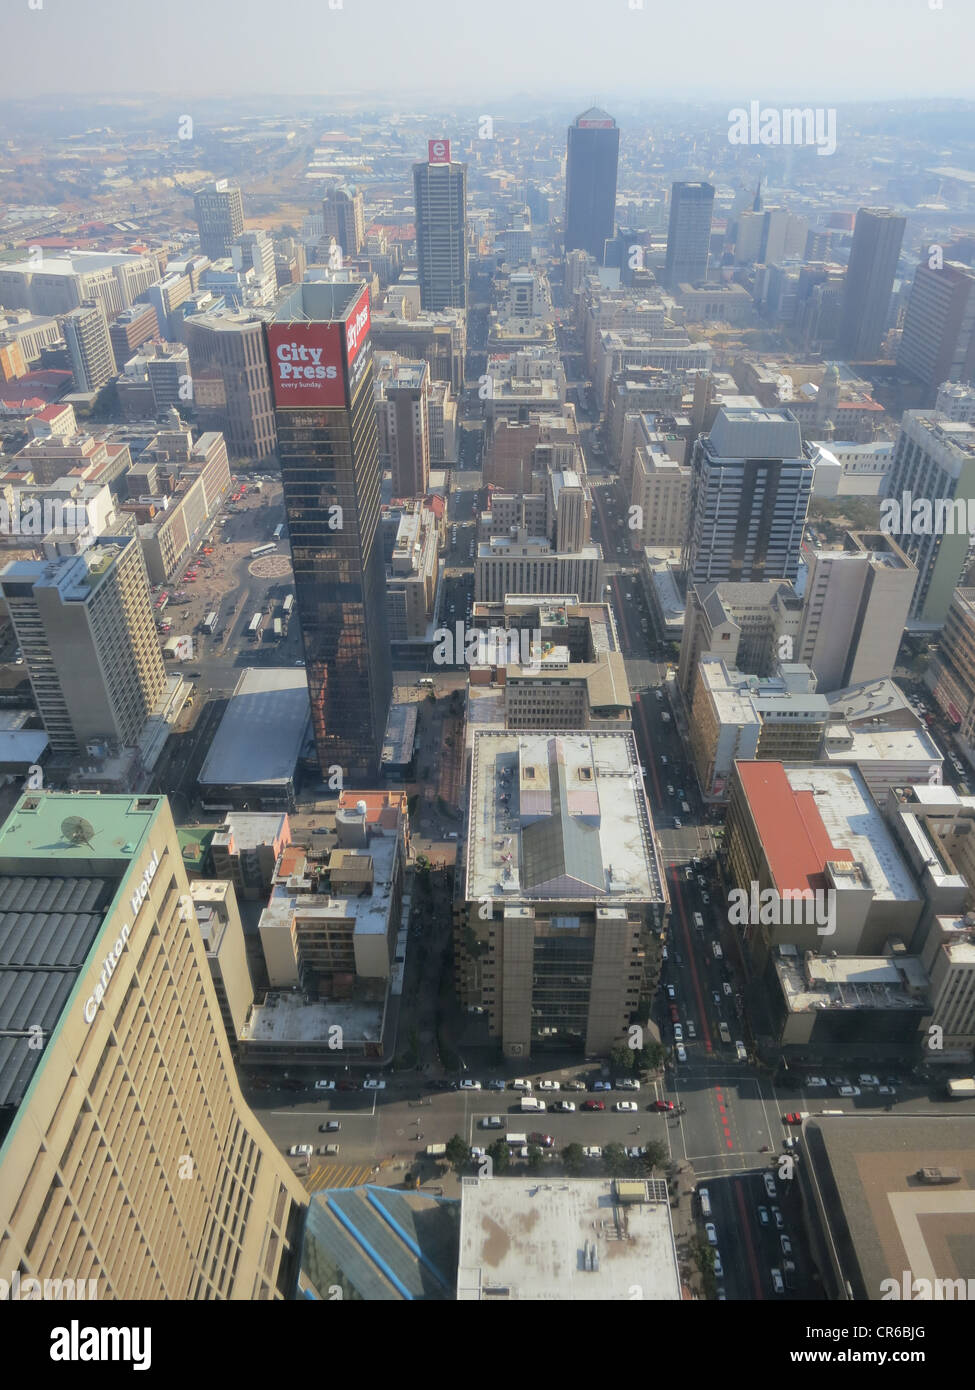 View of the Carlton Centre, 50th Floor, Top of Africa in Johannesburg, South Africa. View of the city's skyscrapers - Stock Image